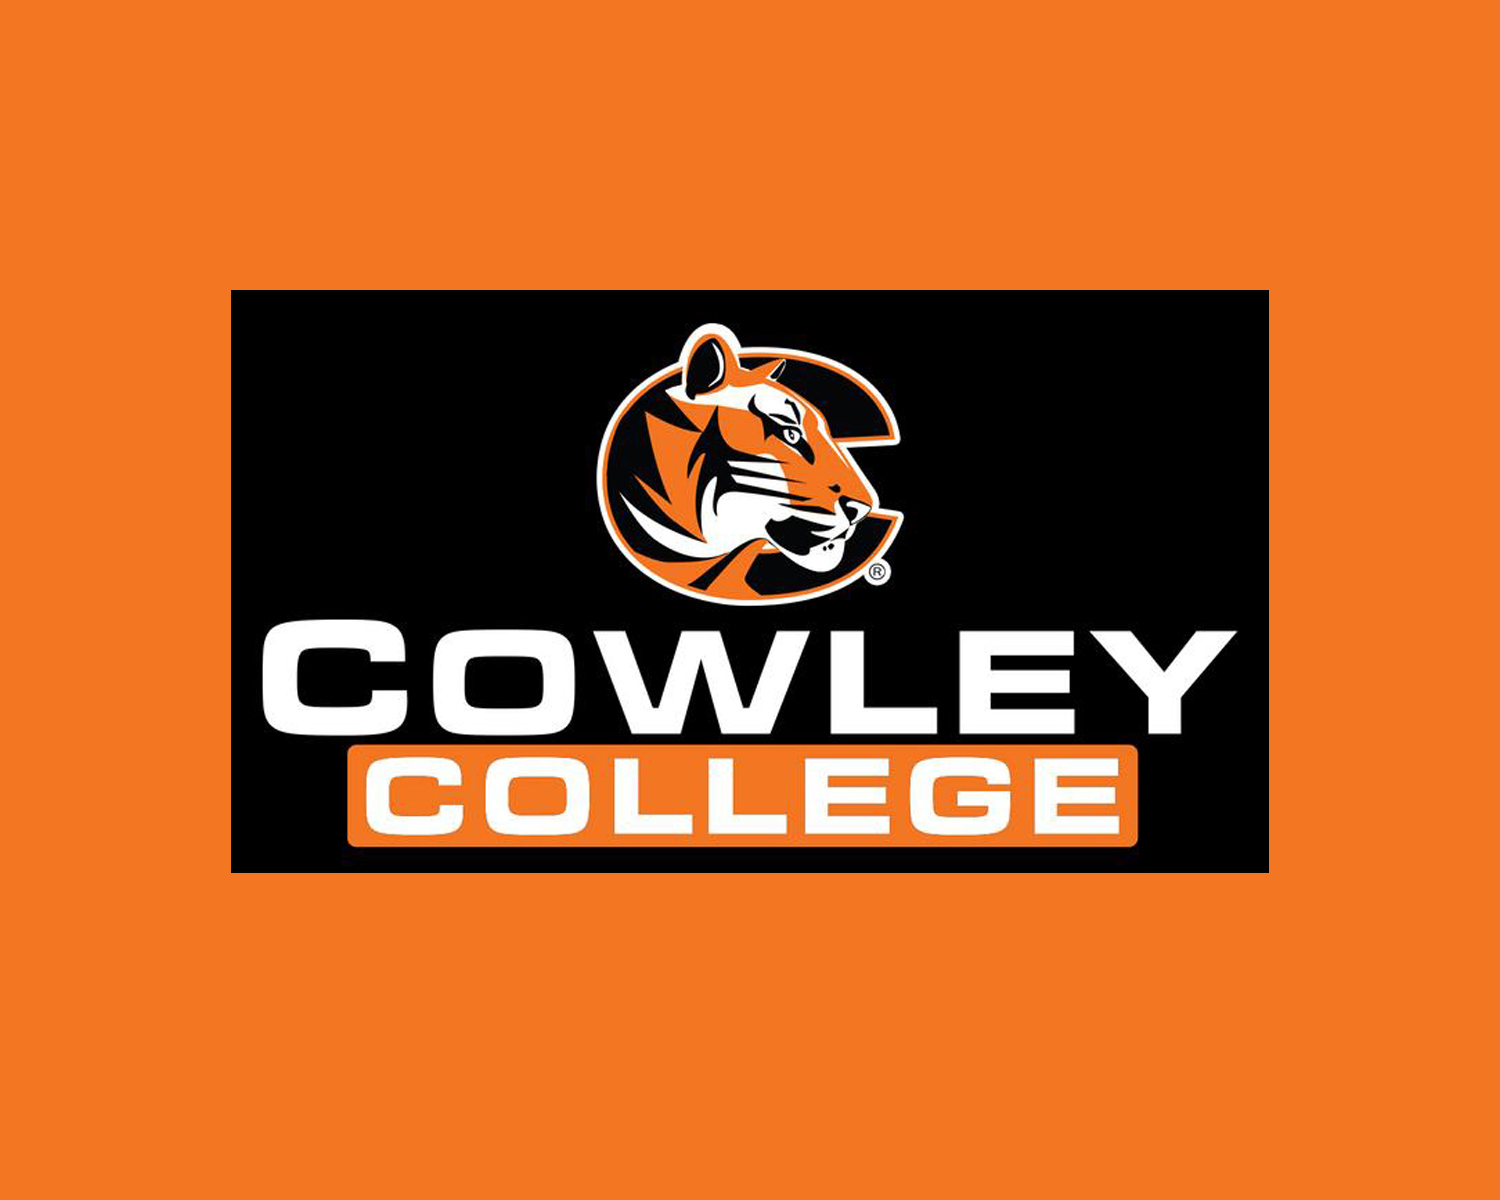 Cowley College GED PROGRAM